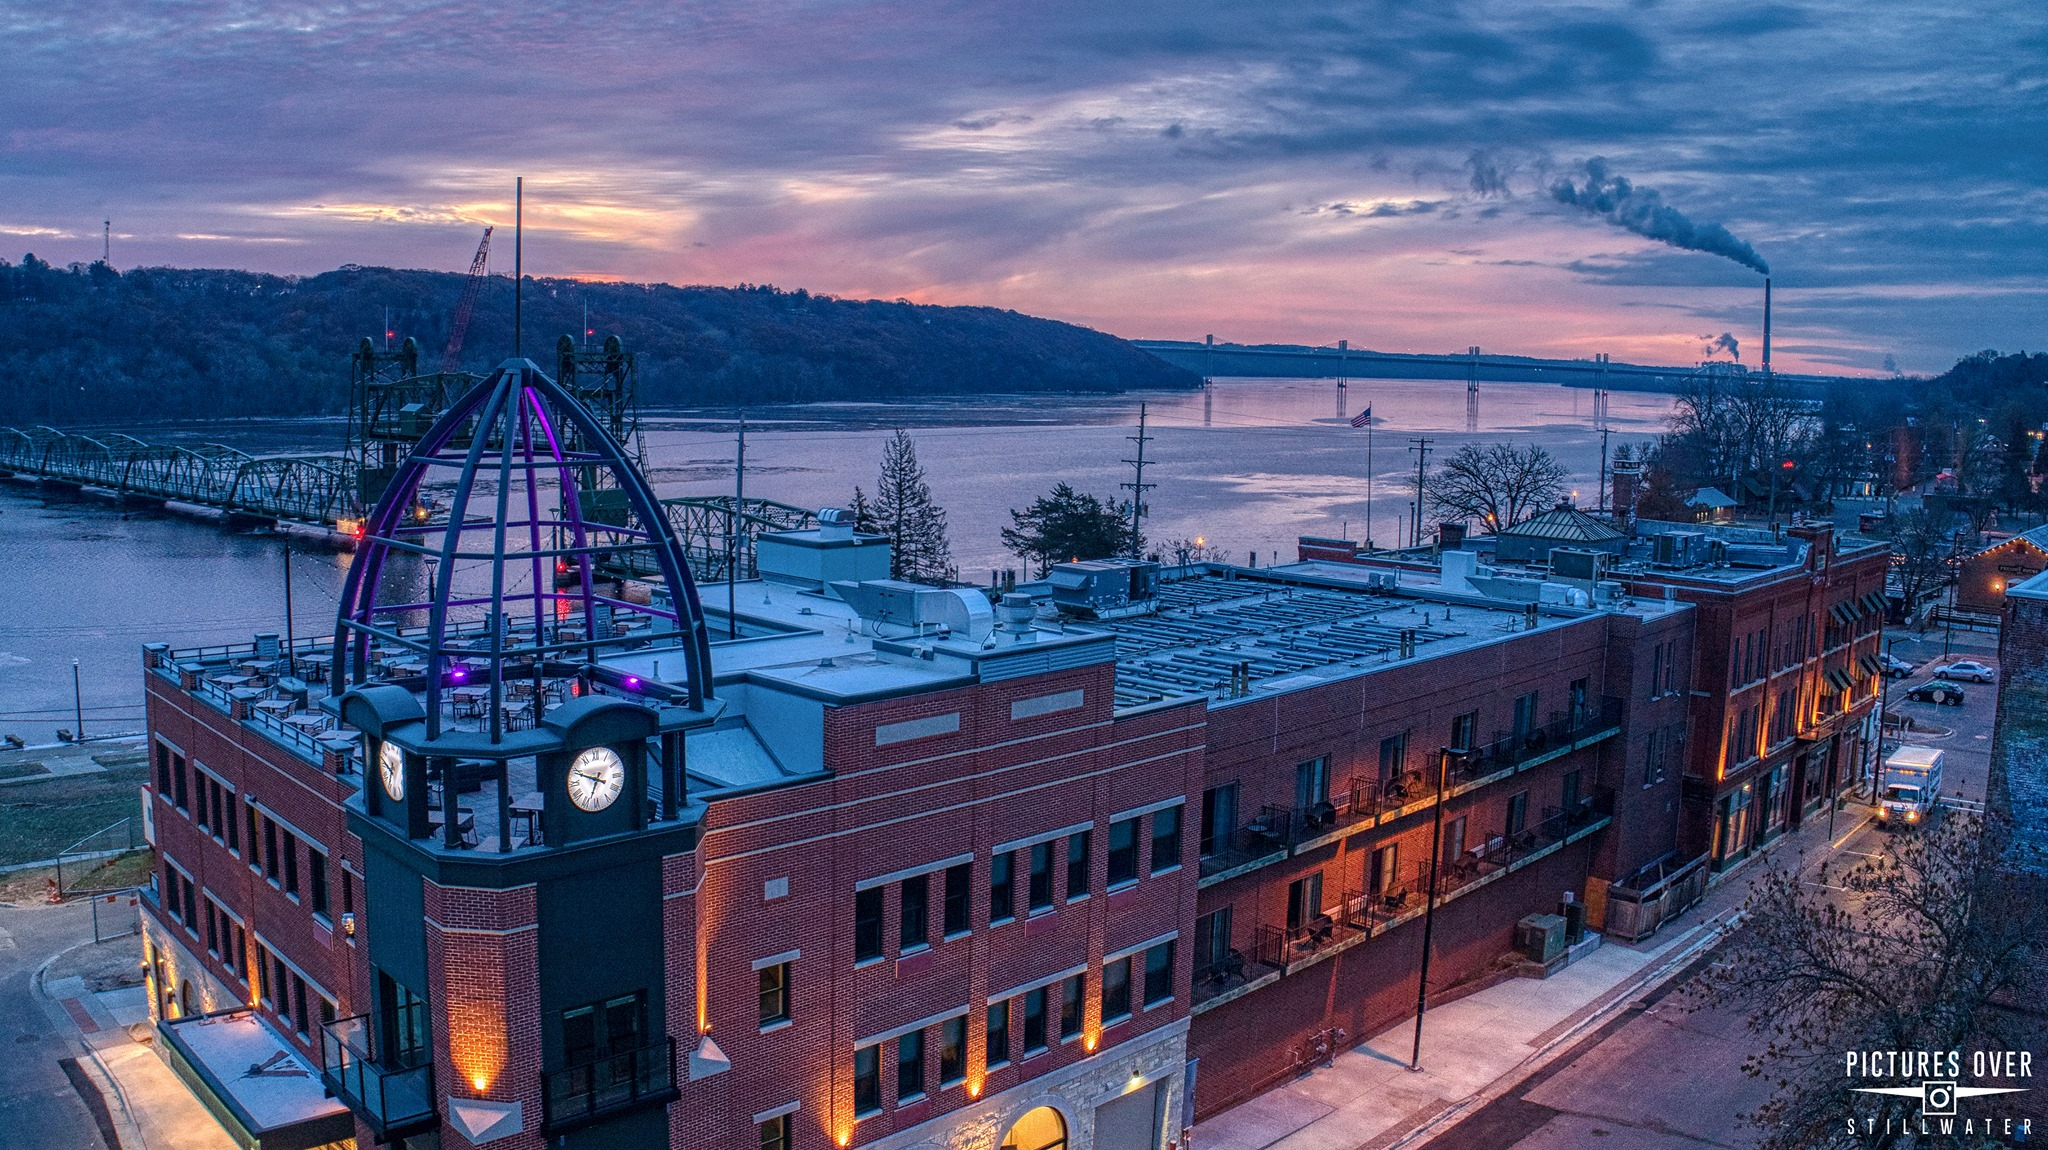 Our Stillwater MN Hotel offers dazzling river views.